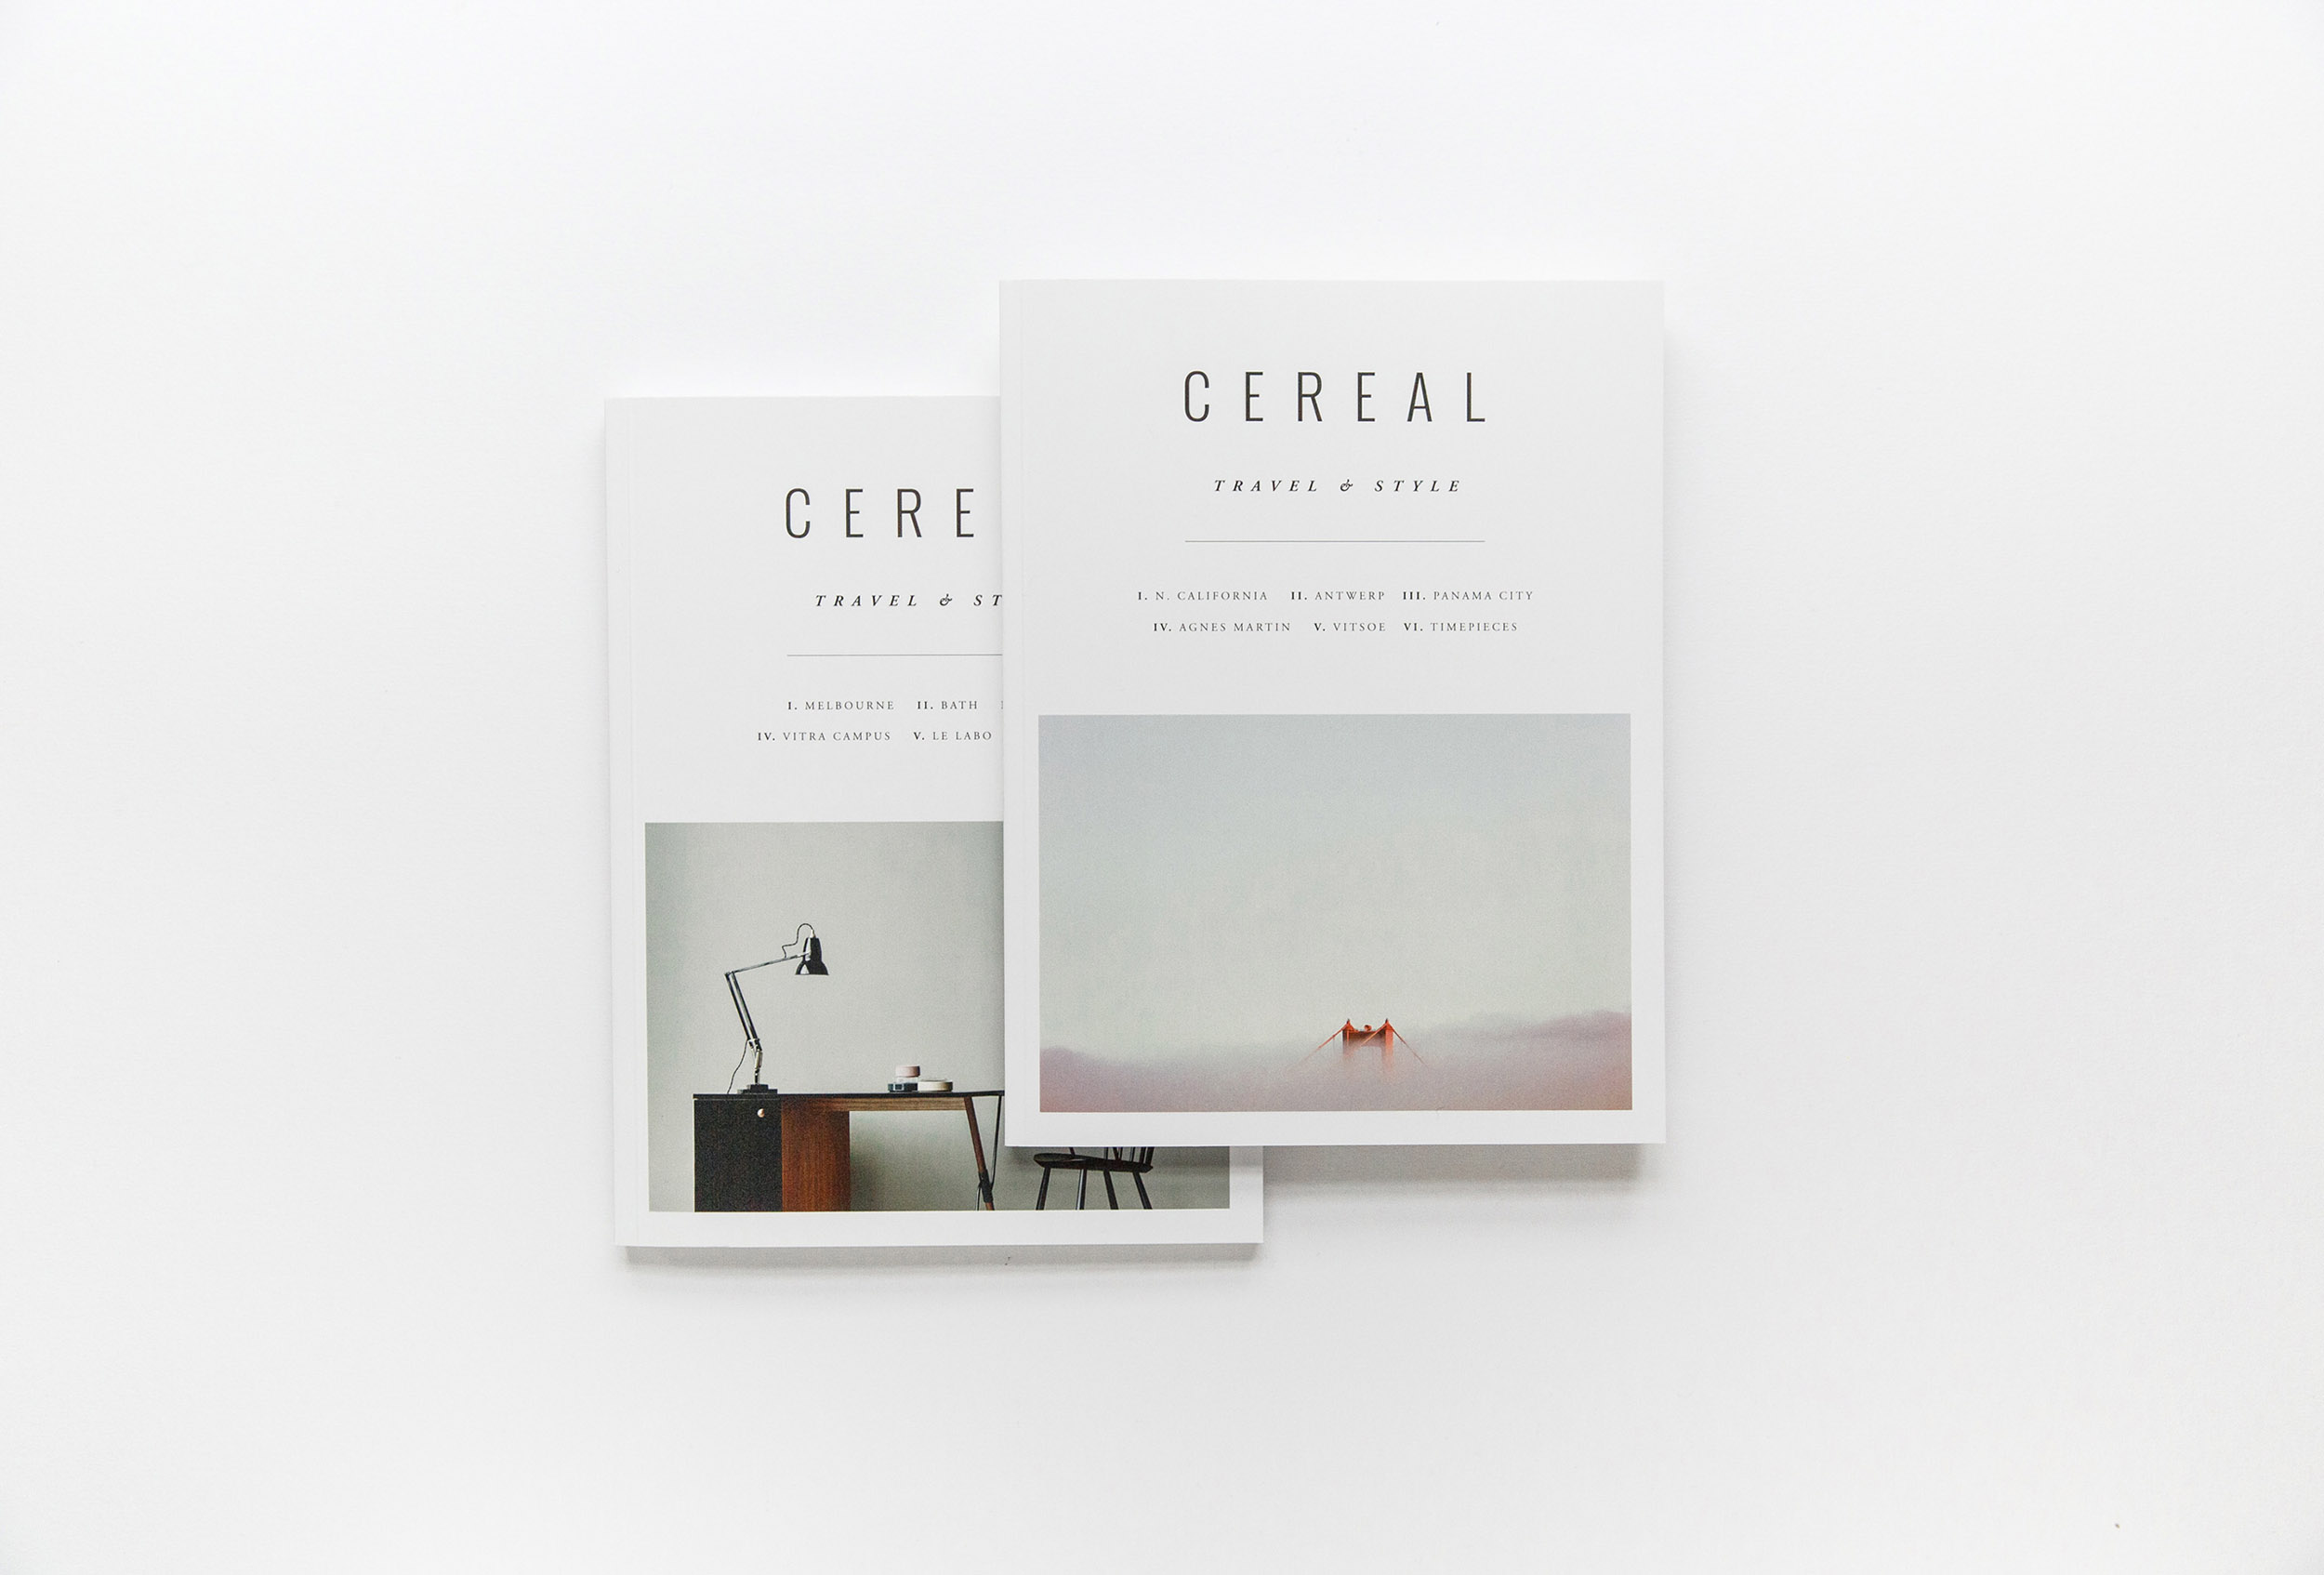 cereal-magazine-design-by-rich-stapleton